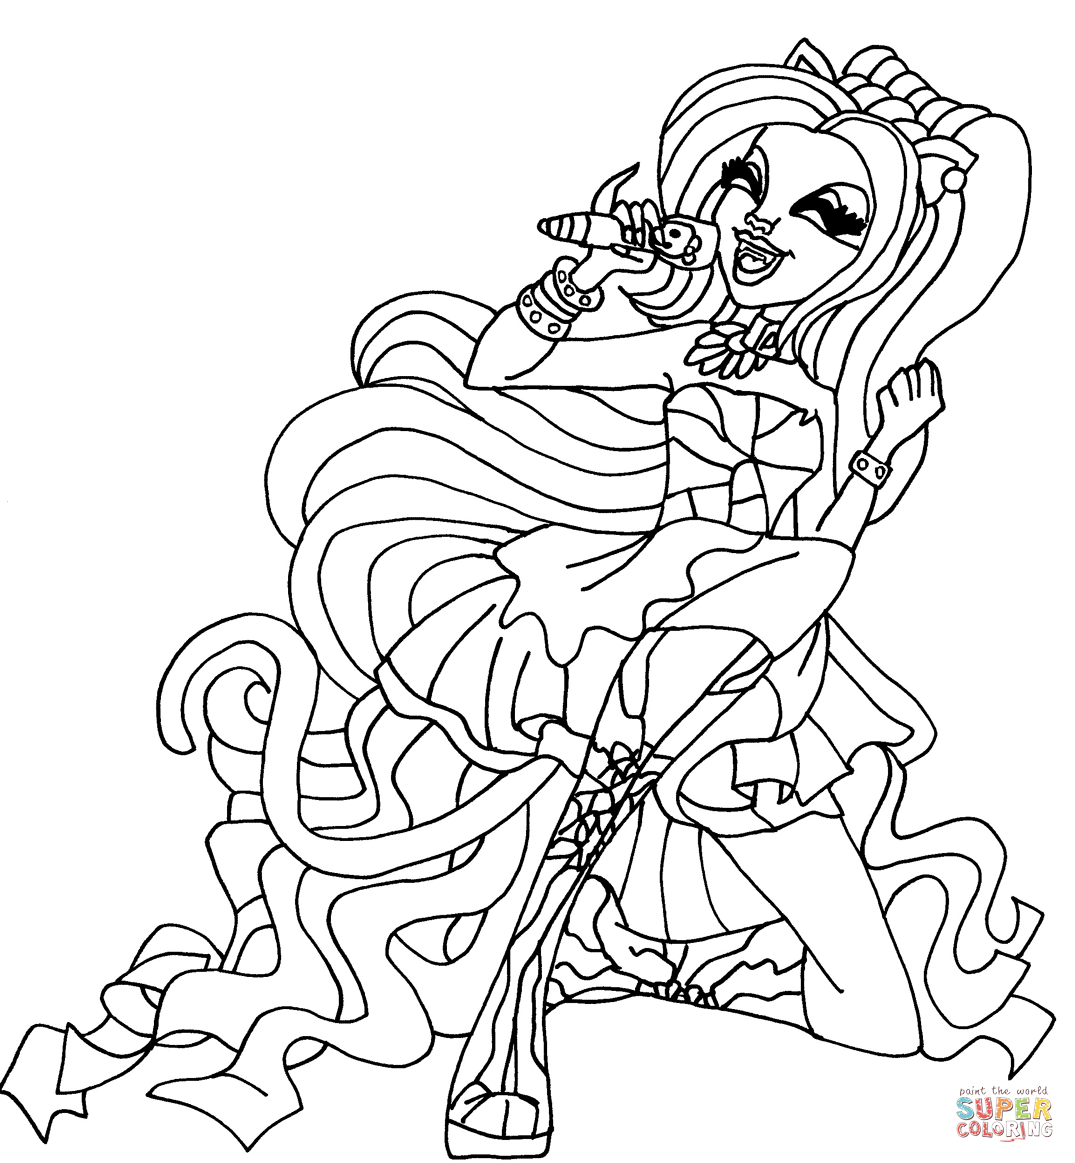 Catty Noir coloring page | Free Printable Coloring Pages